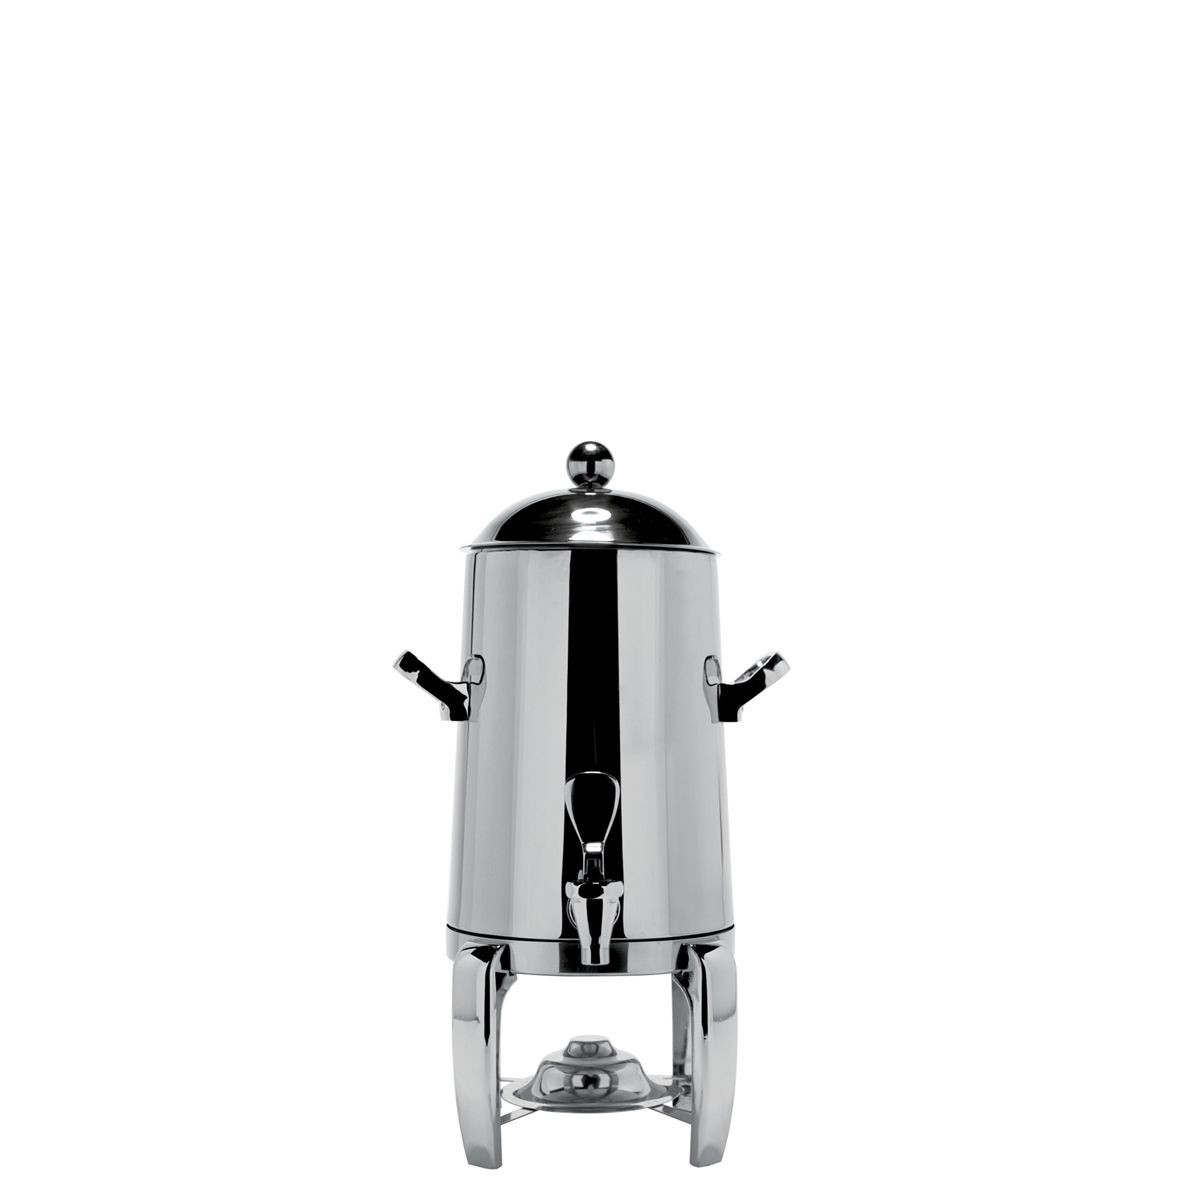 Service Ideas URN15VPS Polished Steel Flame Free Thermo Beverage Urn 1-1/2 Gallon